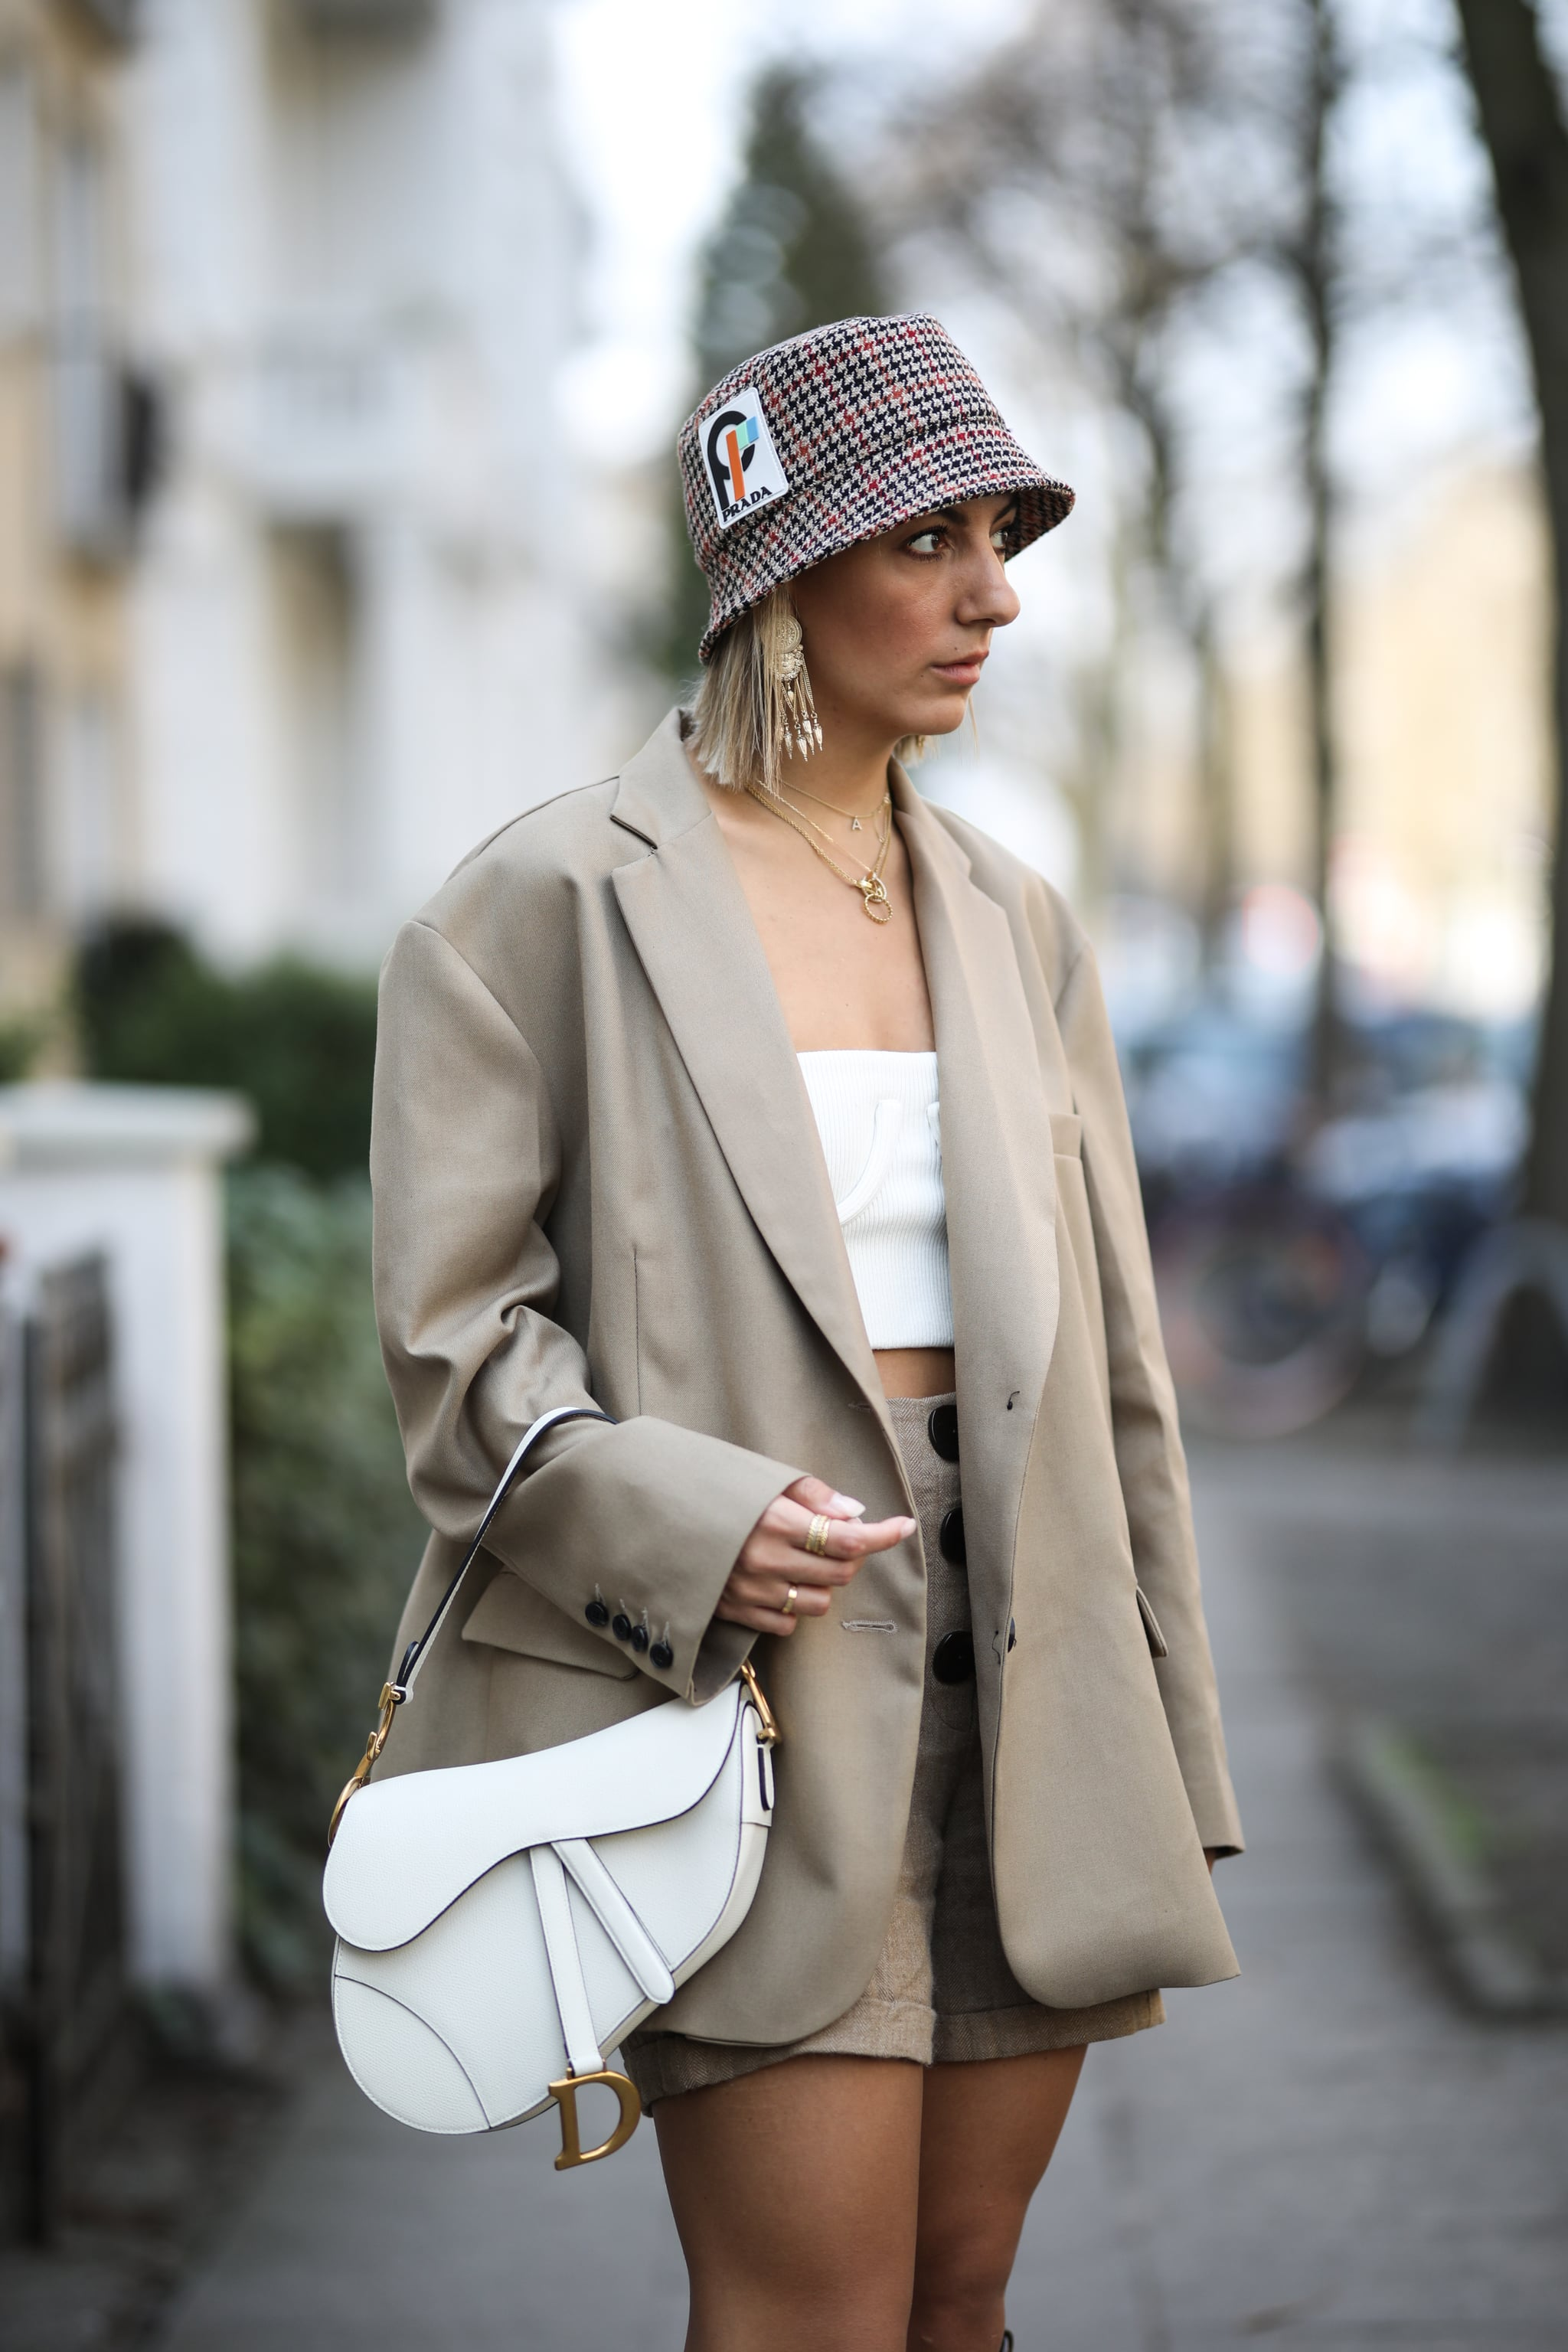 Style A Beige Set With A Bucket Hat And Tube Top For A 90s Look 30 Outfit Ideas That Ll Make You Wonder Why You Don T Wear An Oversize Blazer Every Day